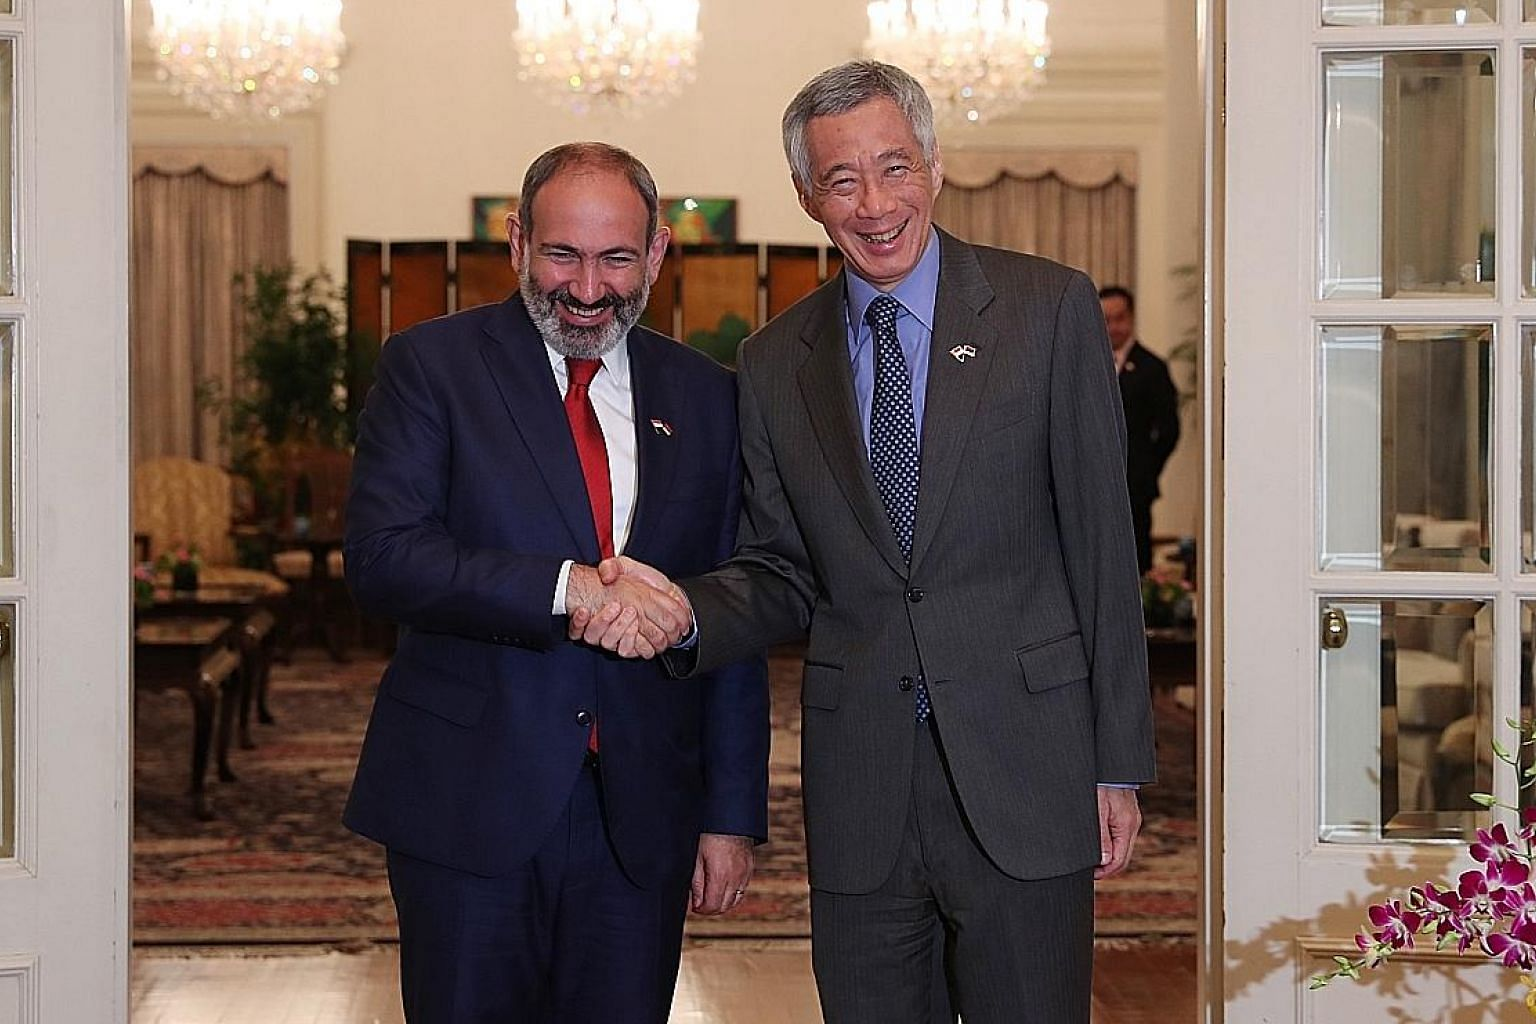 Armenian Prime Minister Nikol Pashinyan and Prime Minister Lee Hsien Loong at the Istana yesterday.